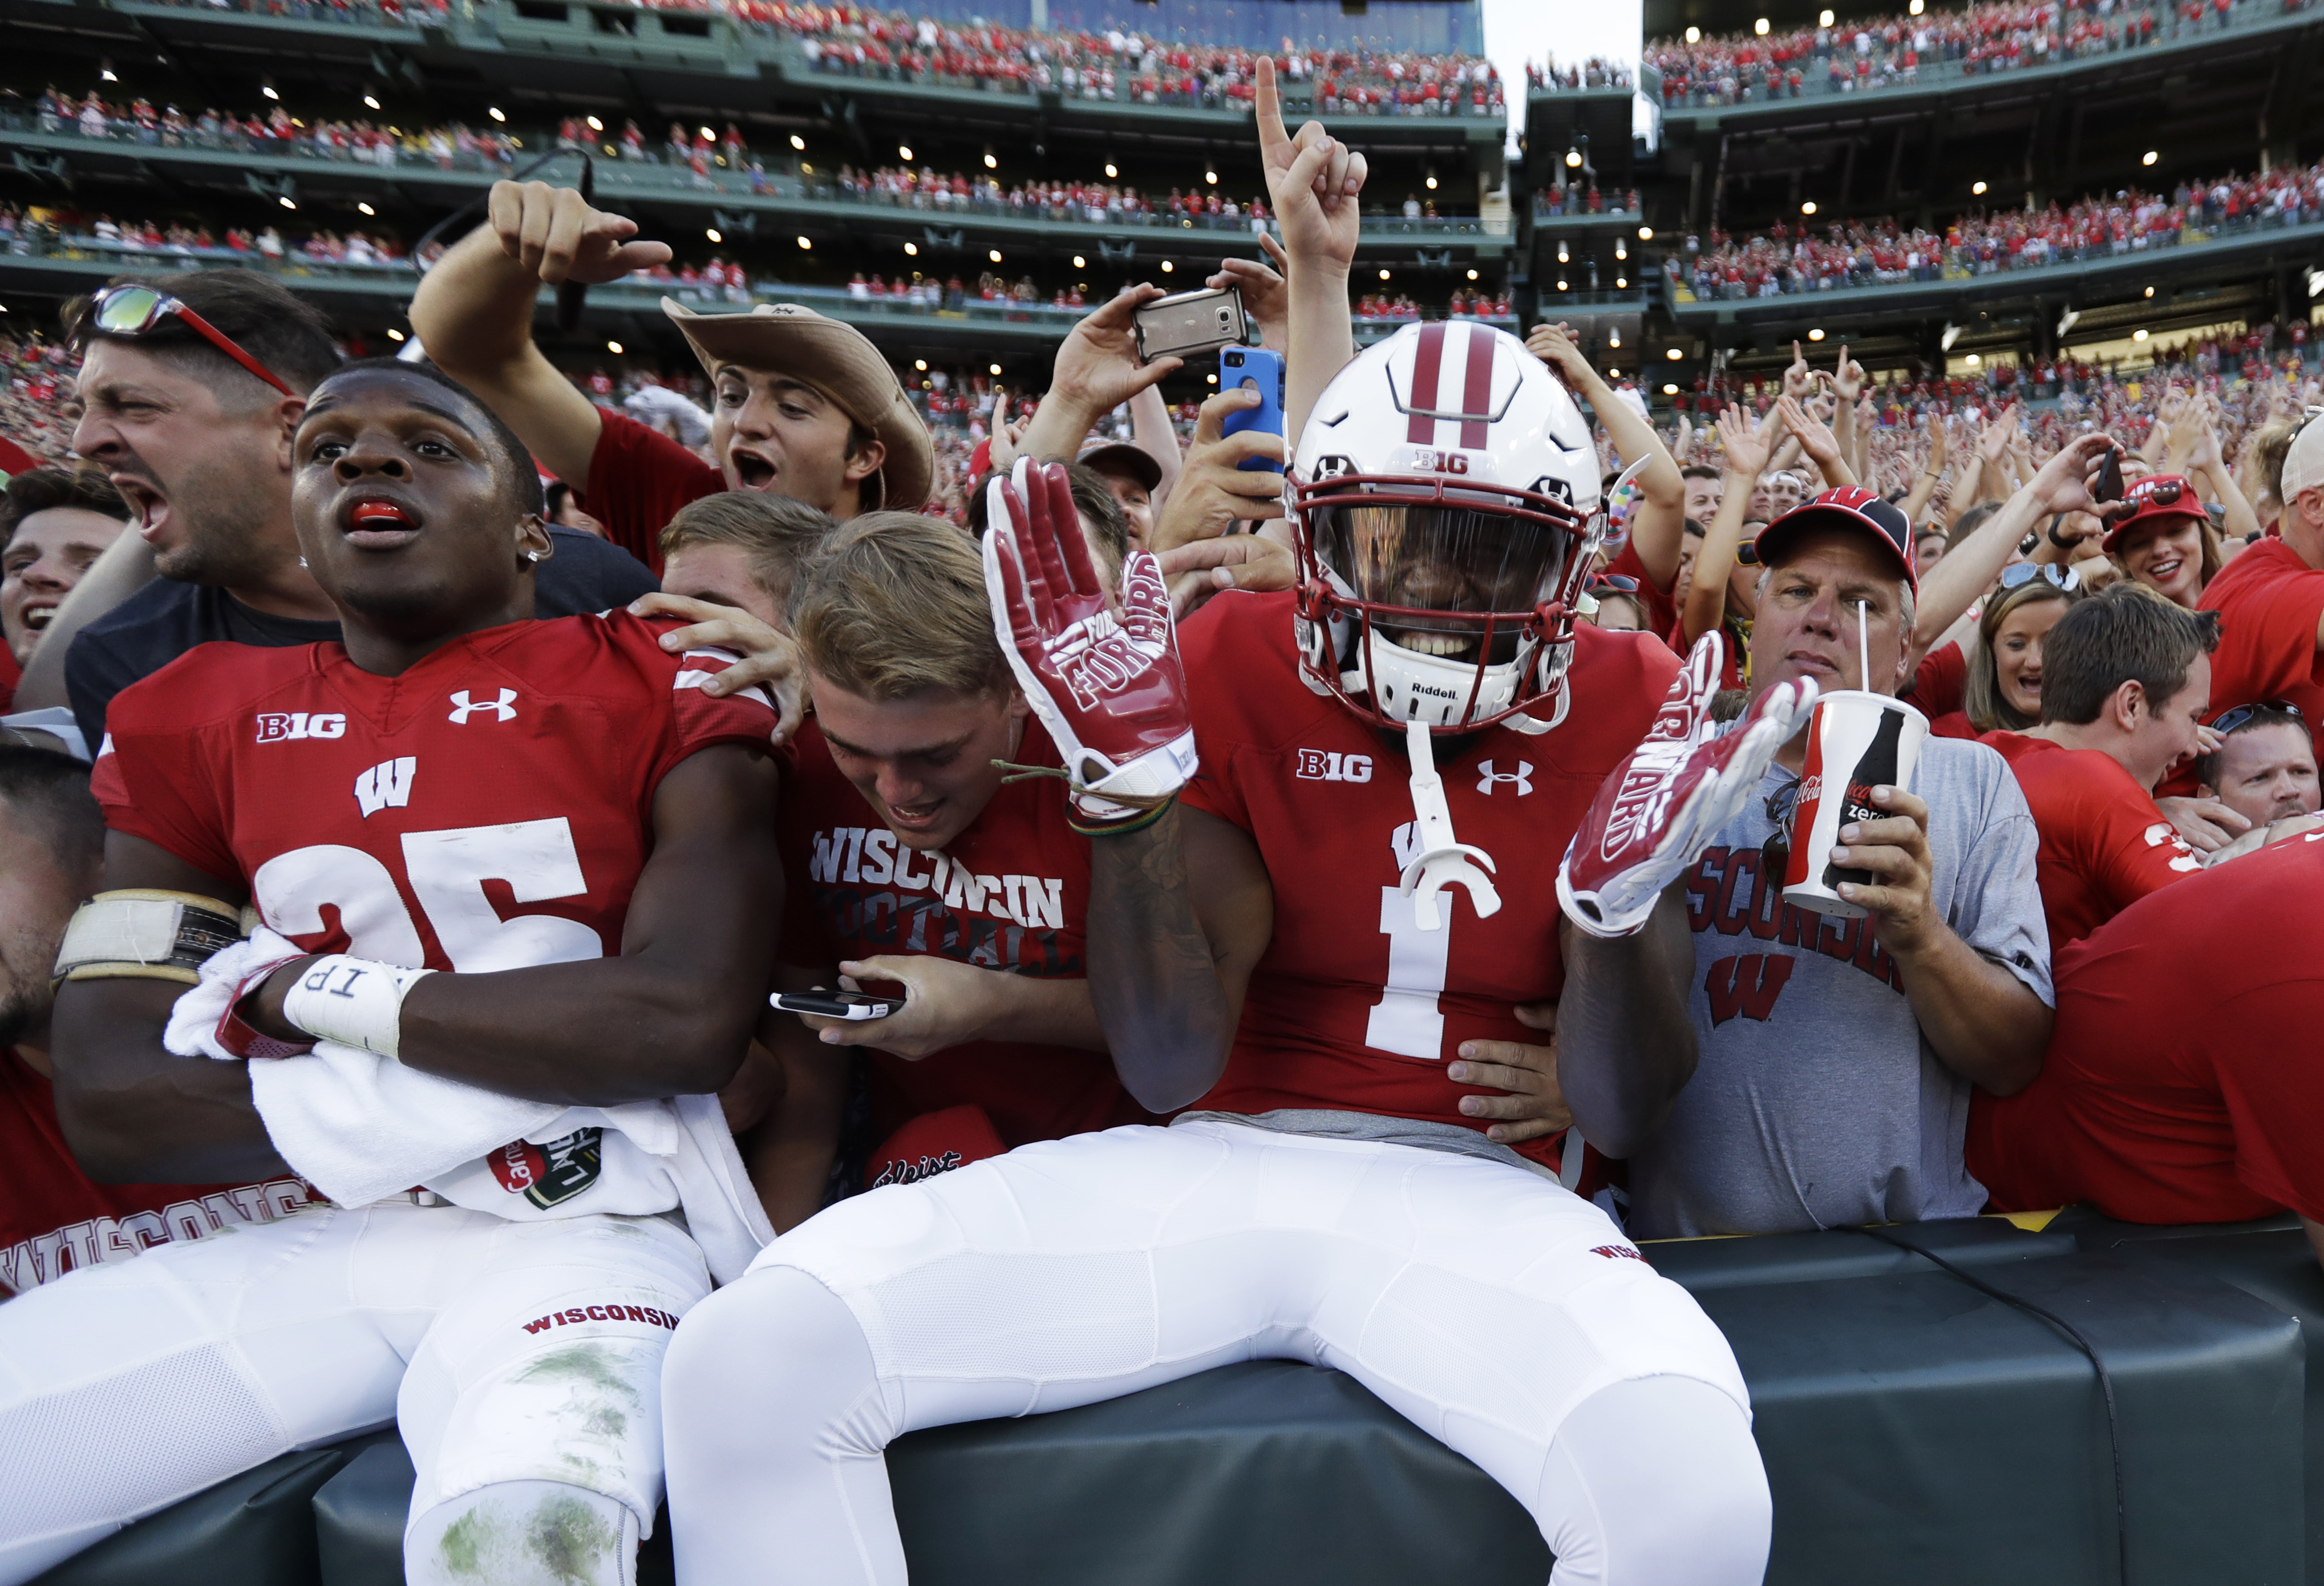 Wisconsin's Reggie Love (1) and Derrick Tindal (25) celebrate with fans after an NCAA college football game against LSU Saturday, Sept. 3, 2016, in Green Bay, Wis. Wisconsin won 16-14. (AP Photo/Morry Gash)